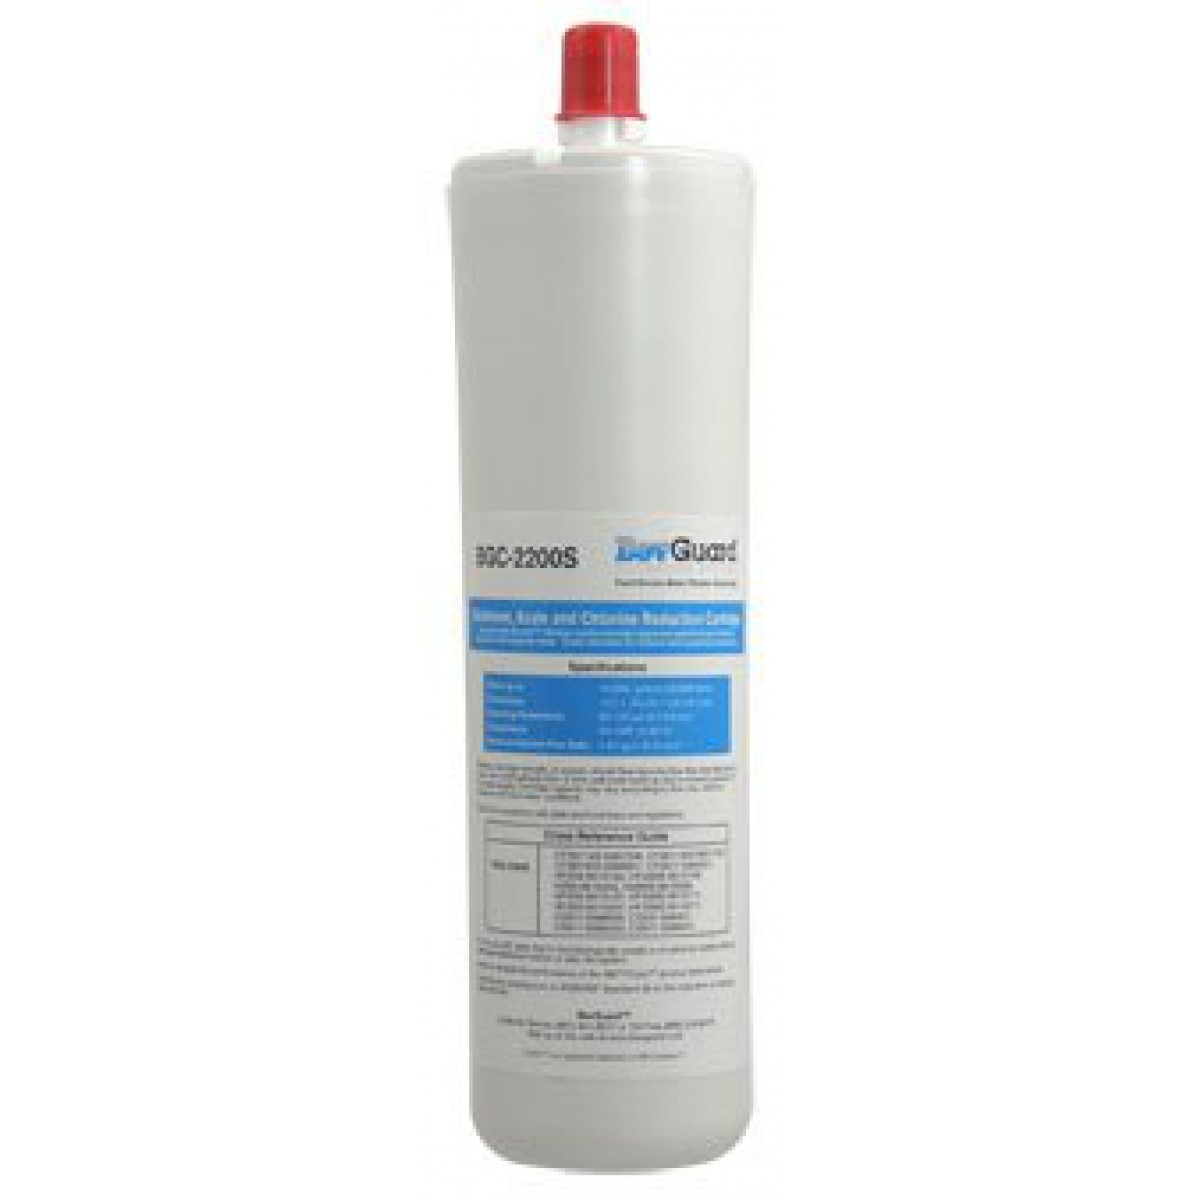 Cfs8812x Cuno Whole House Water Filter Replacement Cartridge